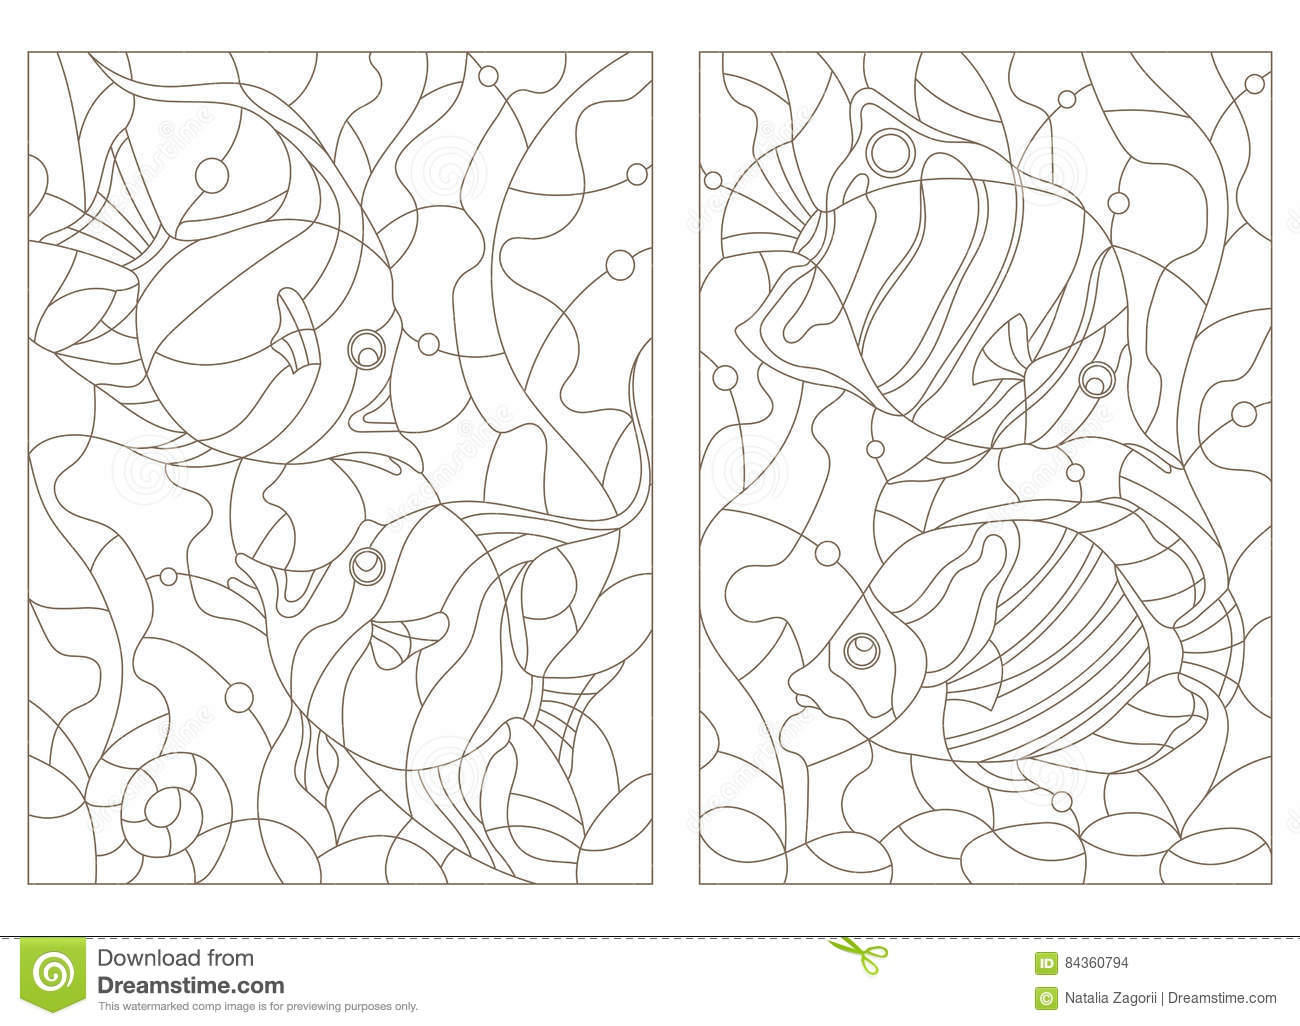 Contour Set Of Illustrations Of Stained Glass With Aquarium Fish ... c5380ceab